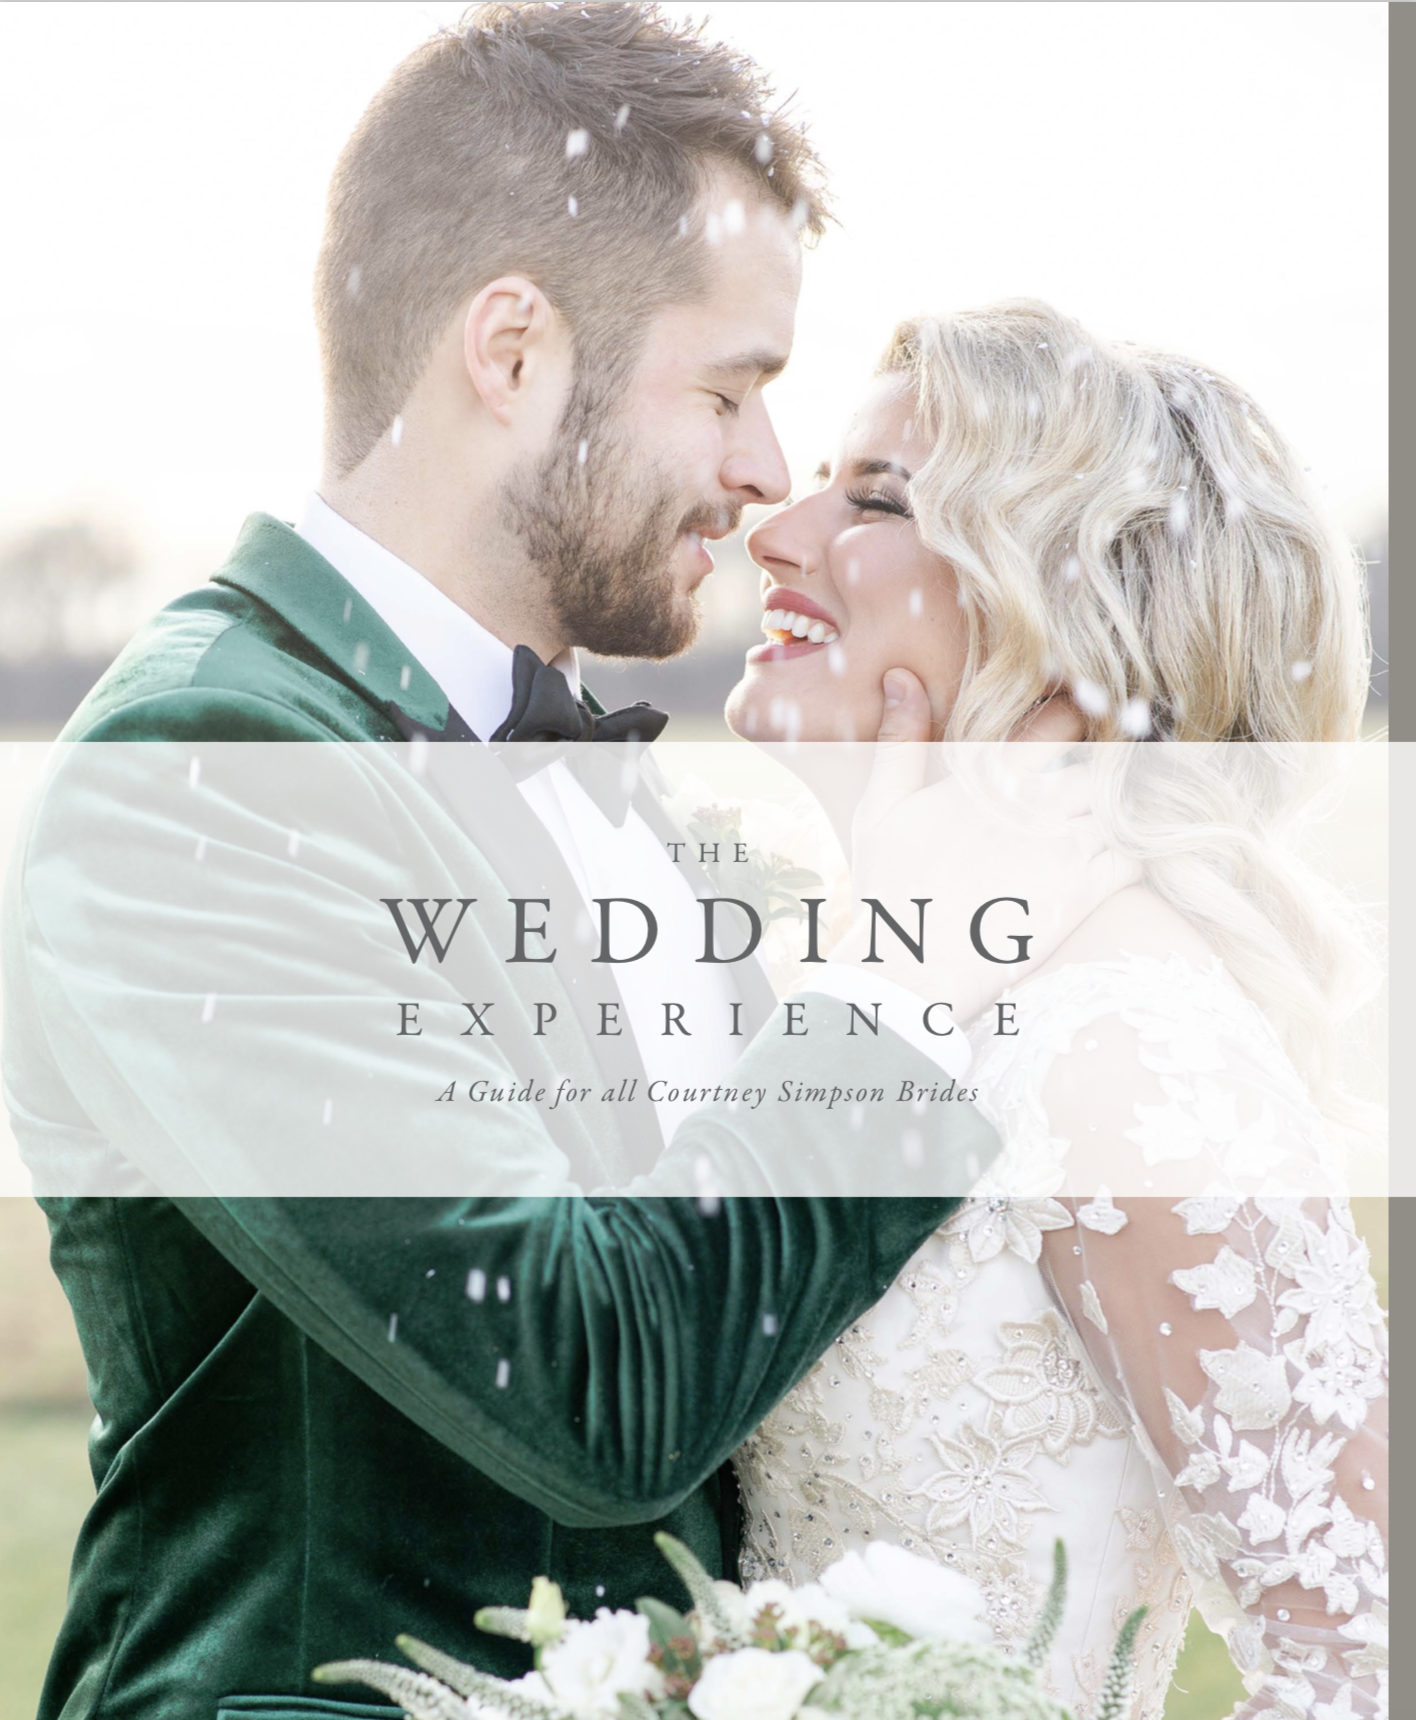 Are YOU a COURTNEY SIMPSON couple? - Click This Link to download our Bridal Guide filled with over 70 pages of information to help your special day go smoothly and prepare you and your fiancé for the best day of your lives.xo Court